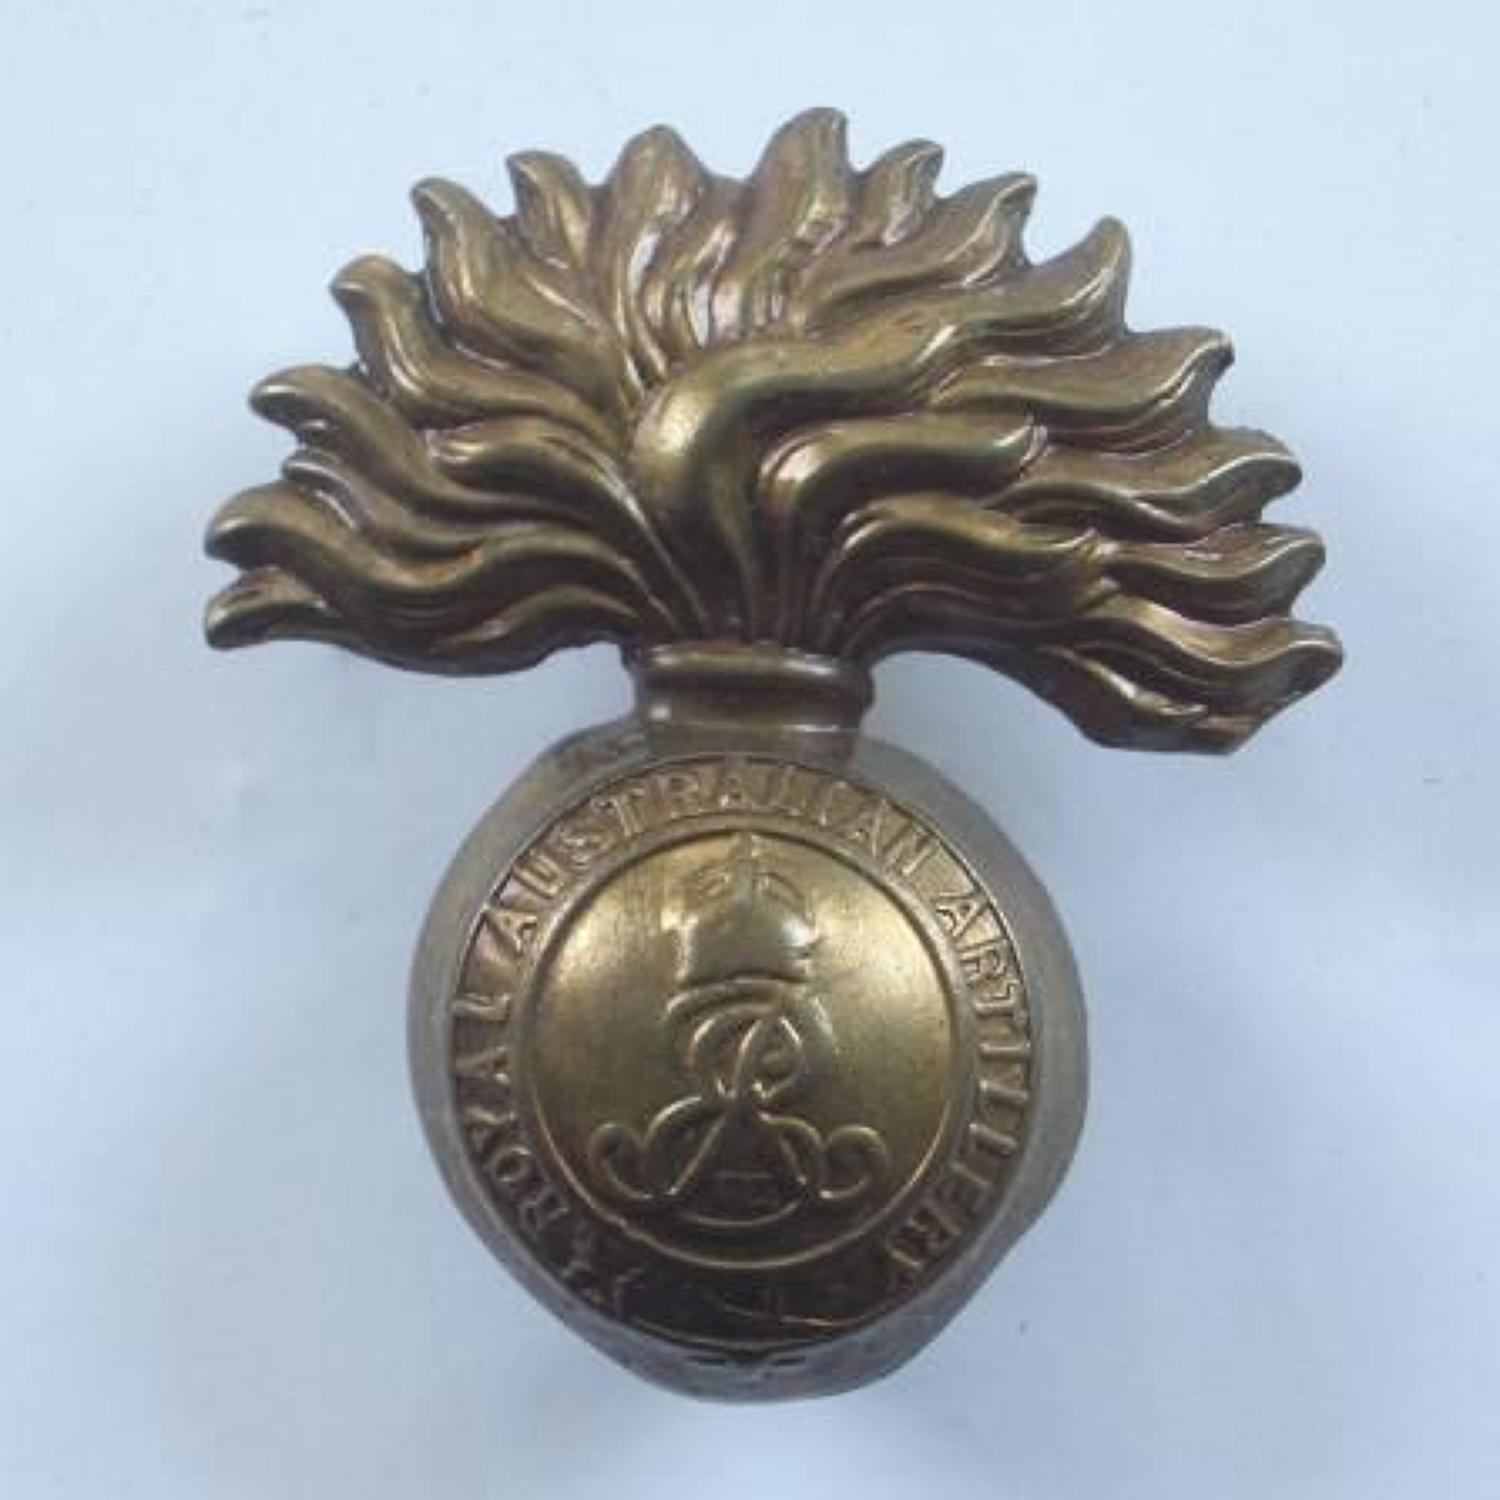 Edward VII Royal Australian Artillery Cap Badge circa 1902-10.